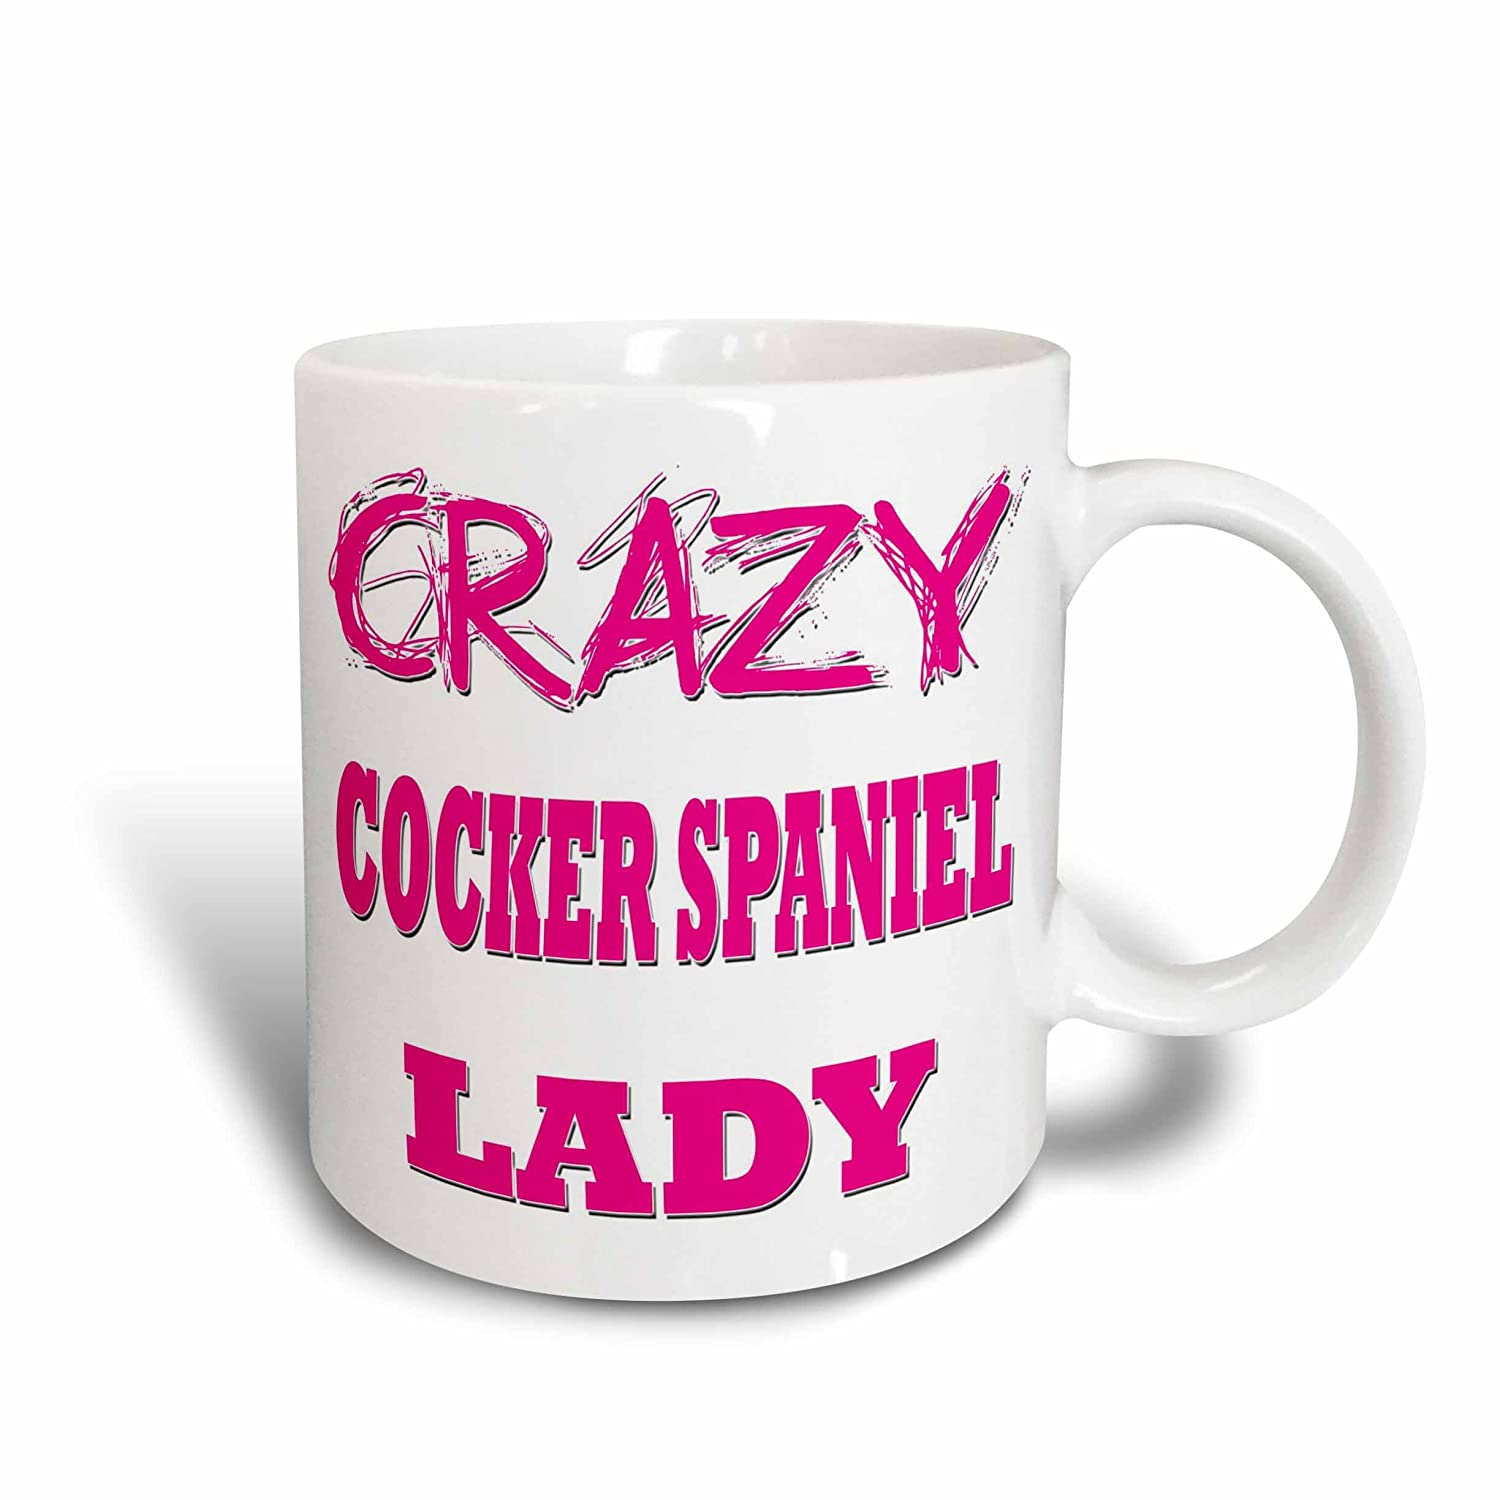 3dRose 174990/_1 Crazy Cocker Spaniel Lady Ceramic Mug 11 oz White